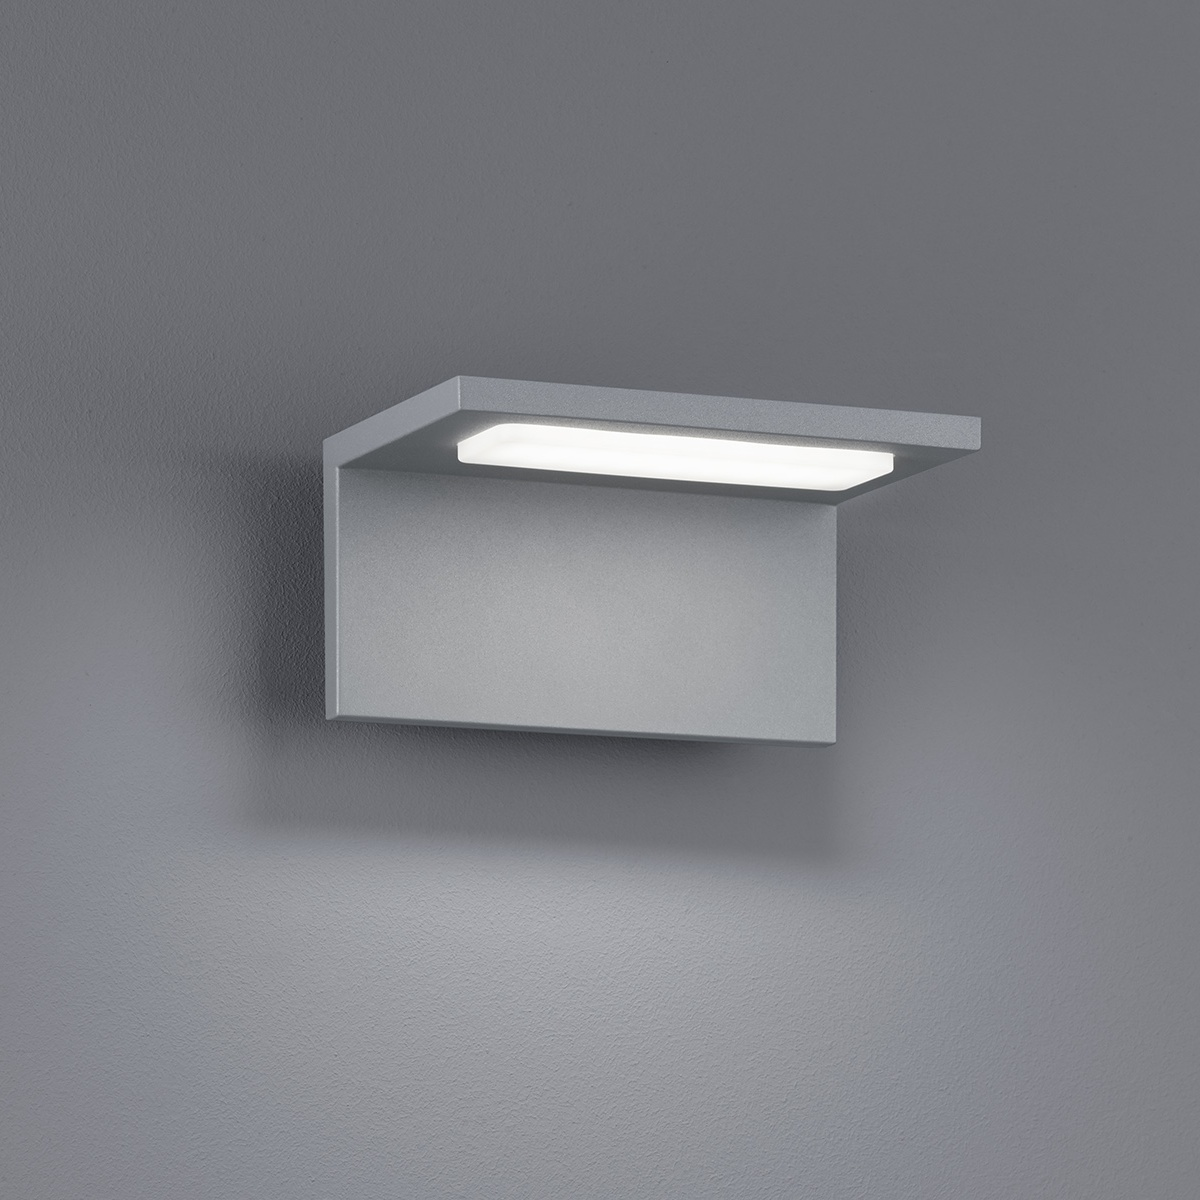 LED-seinävalaisin Trave 170x130x85 mm titaani